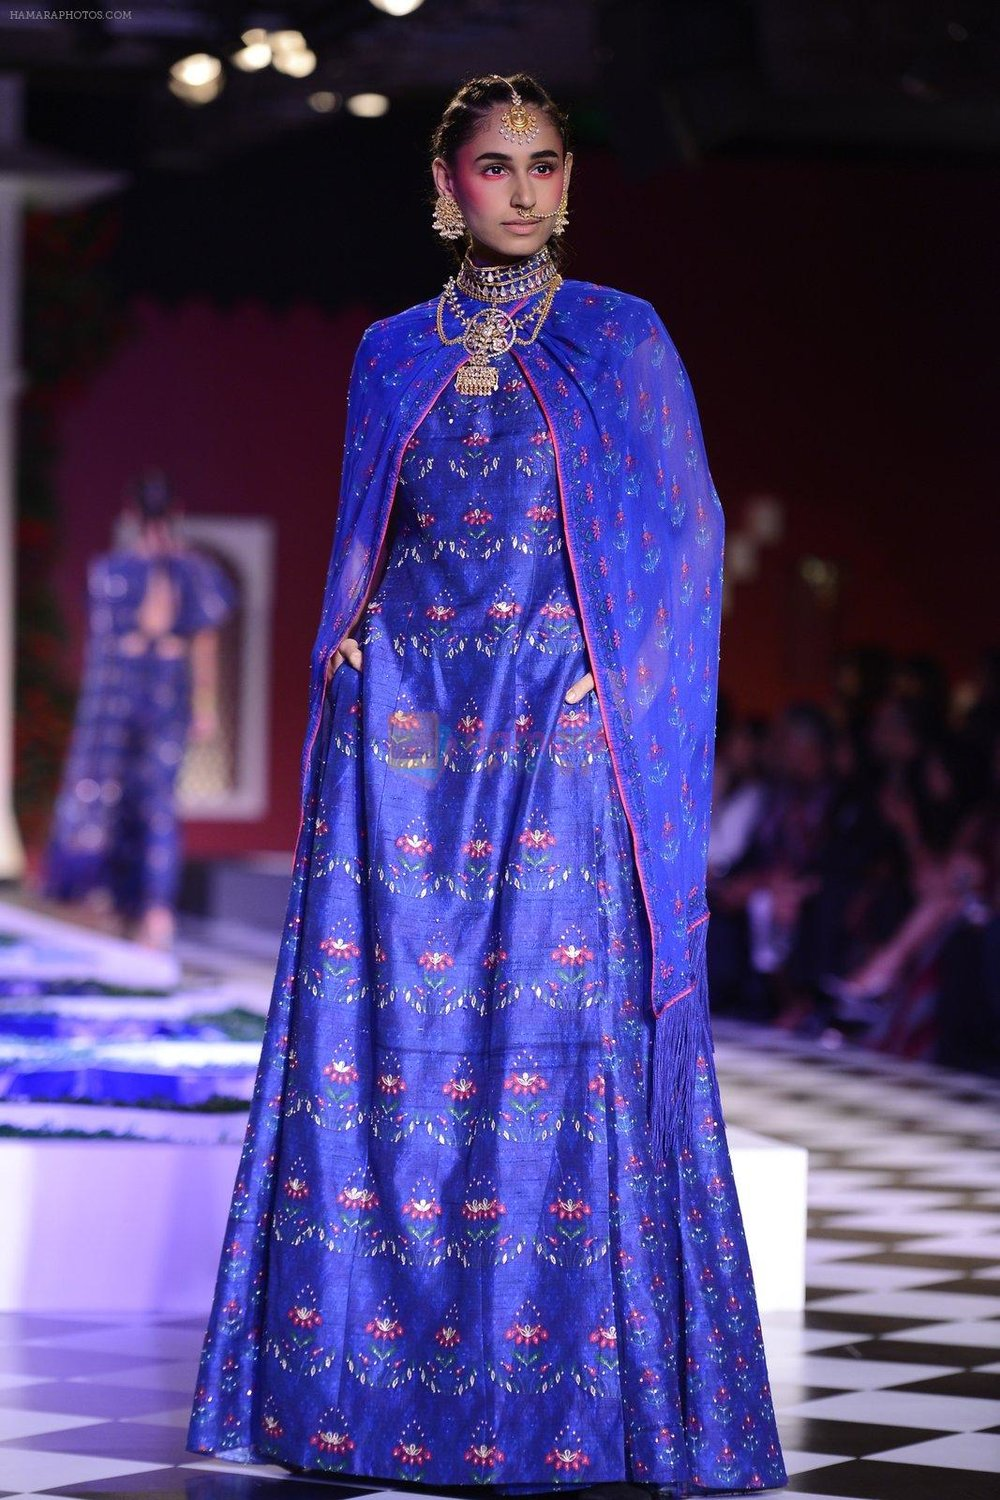 Model walk the ramp for Anita Dongre show at the FDCI India Couture Week 2016 on 21st July 2016 shown to user